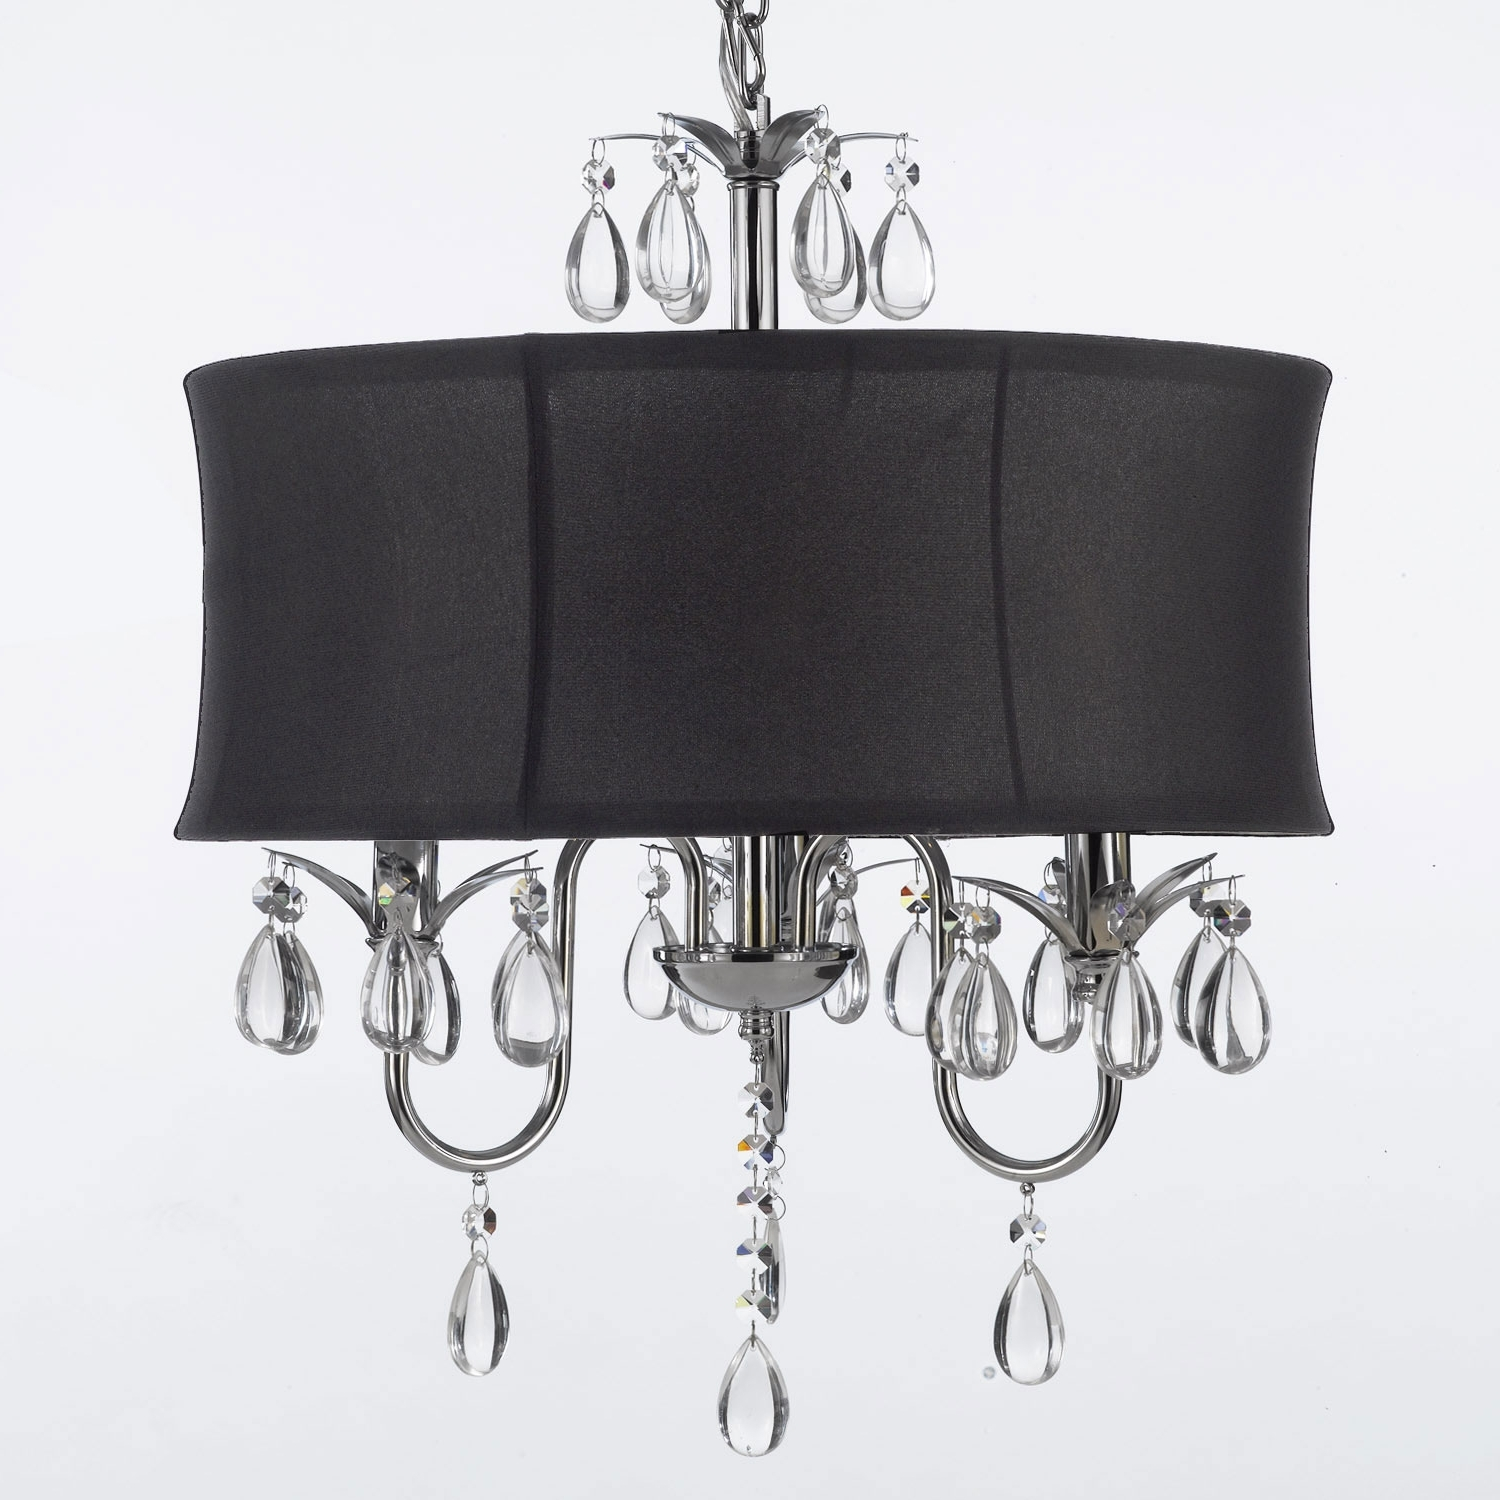 Popular Modern Black Chandelier With Chandelier: Interesting Black Crystal Chandeliers Black Chandelier (View 15 of 15)